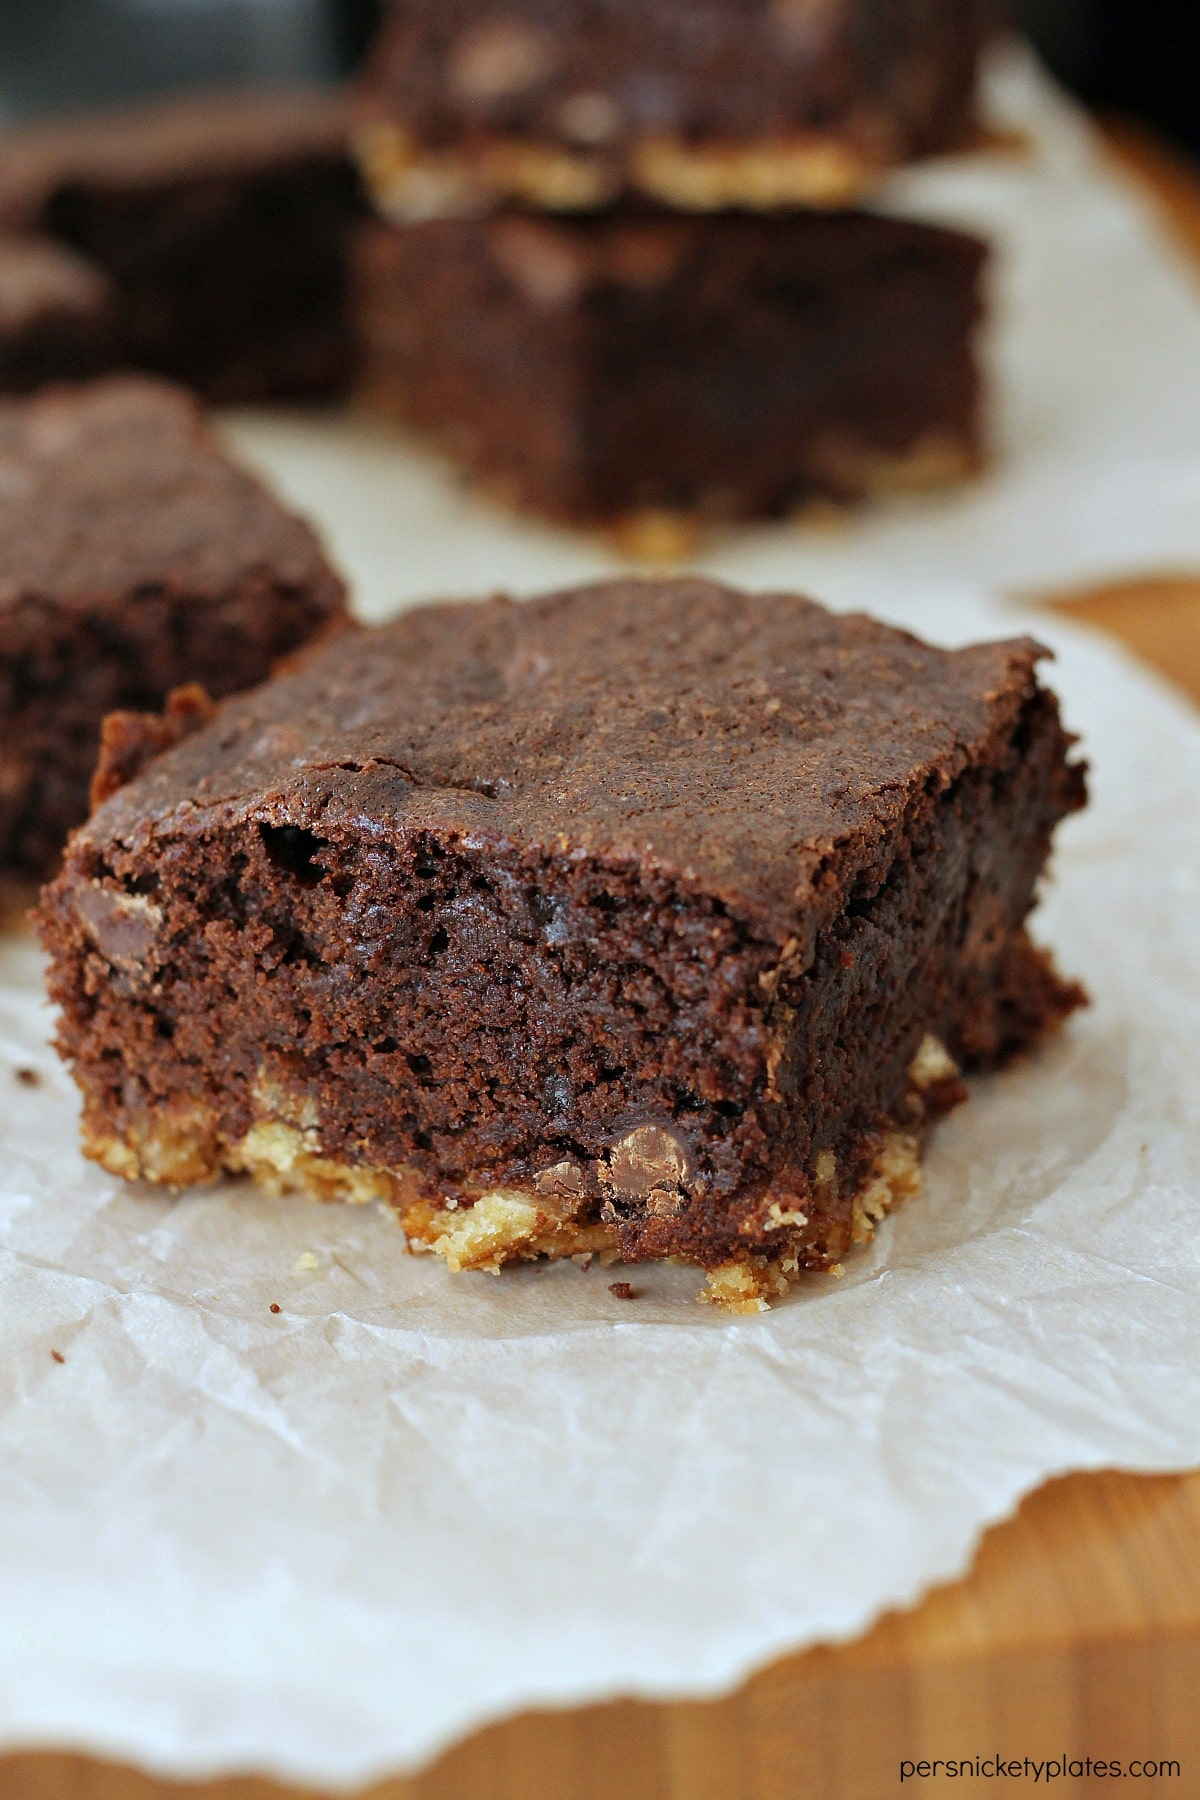 Pretzel Crusted Brownies have a layer of pretzel crust topped with a fudgey chocolate chip brownie. These sweet and salty brownies are a perfect sweet treat!